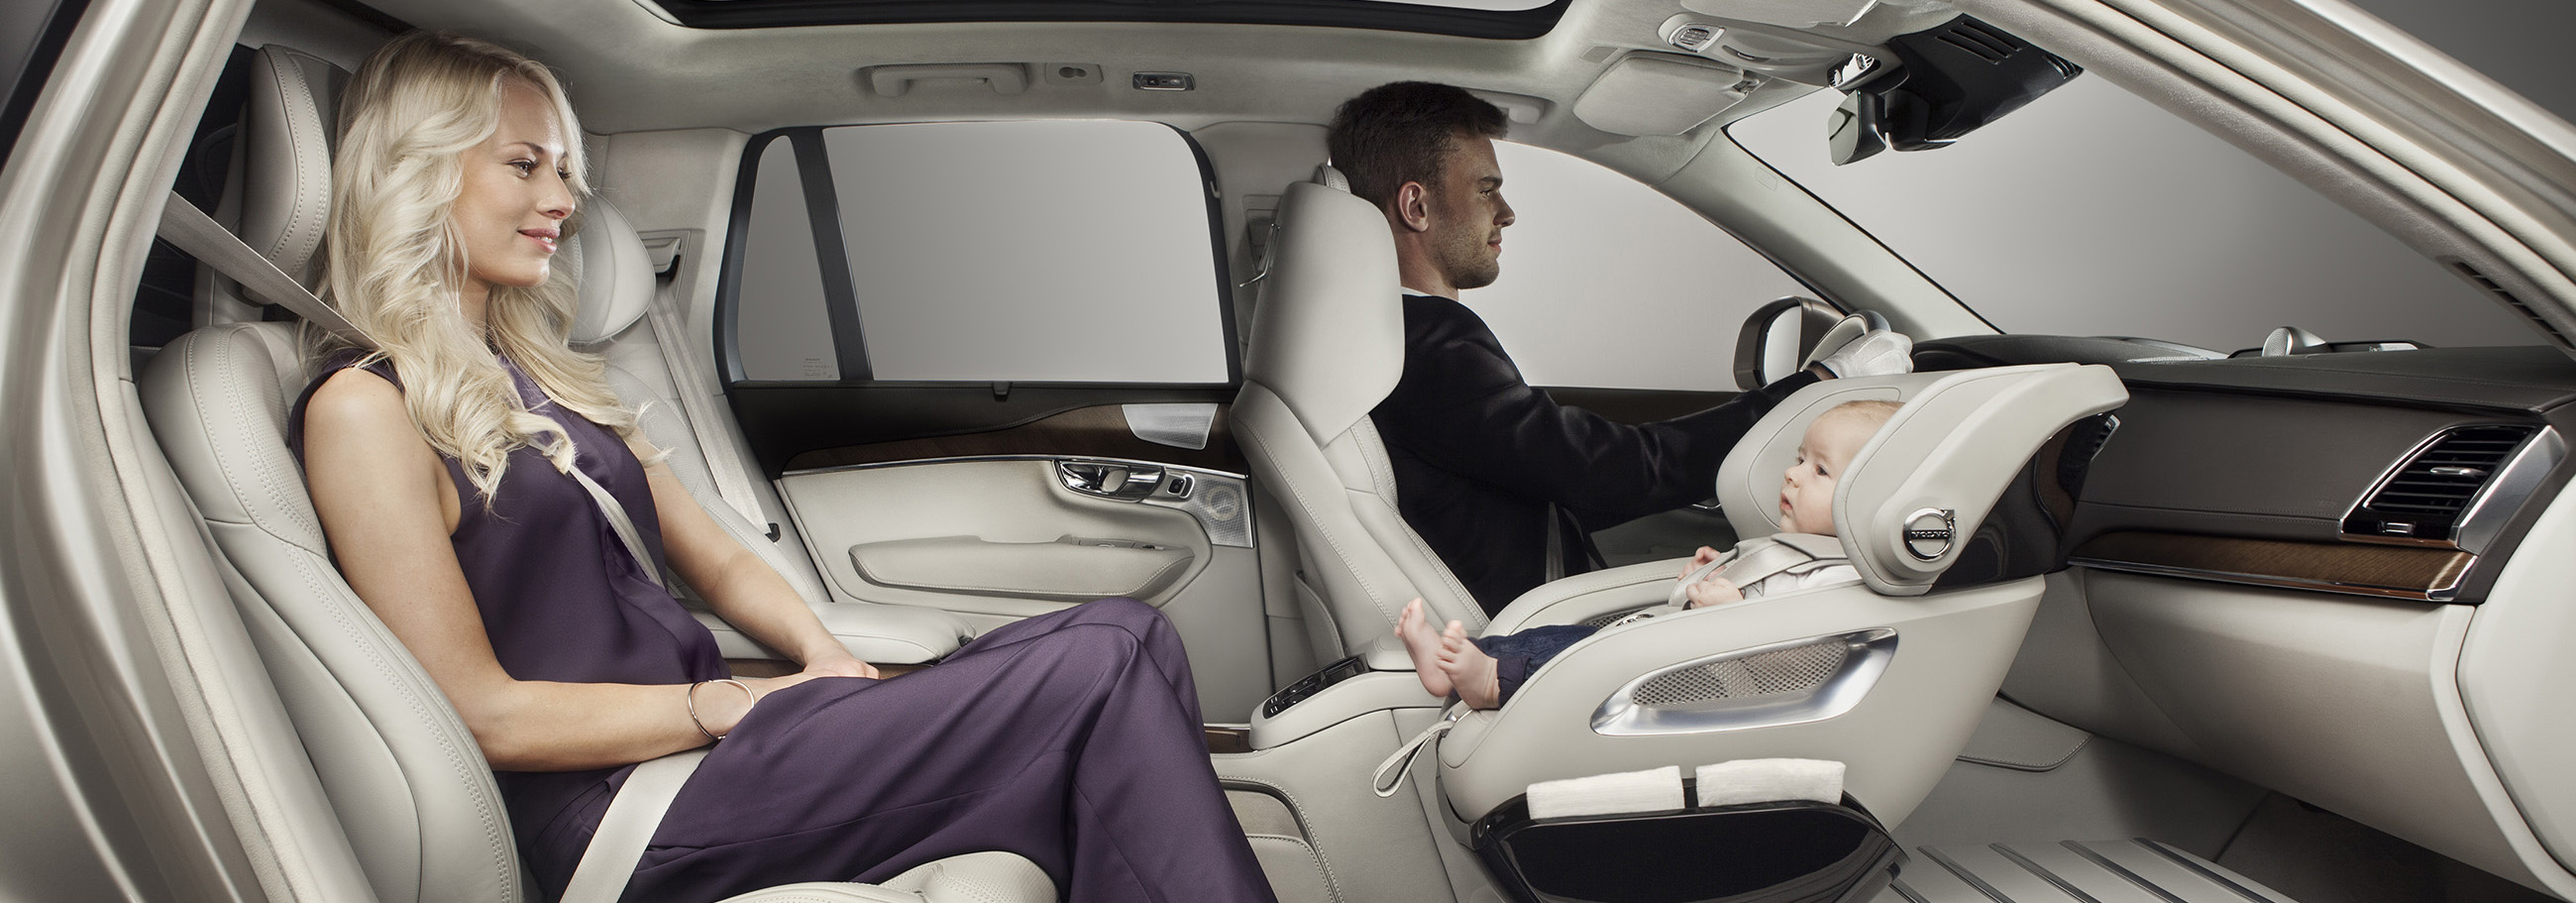 Volvo Cars Adds A Little Luxury With Excellence Child Safety Seat Concept